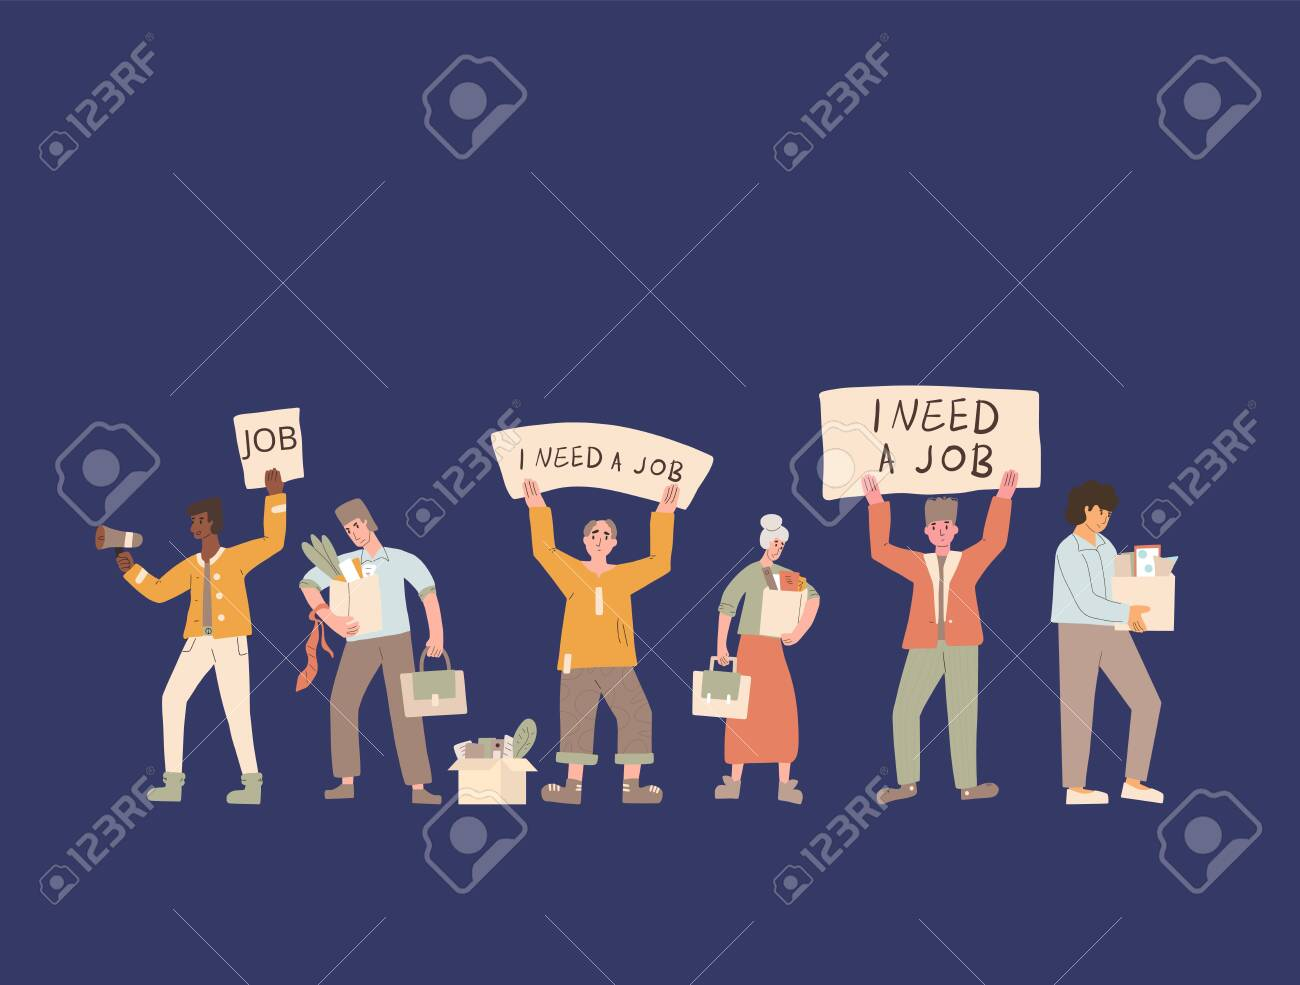 Protests against dismissal. Jobless people. Job search. Unemployed in search of work. Group of people shows the sign. - 150631258